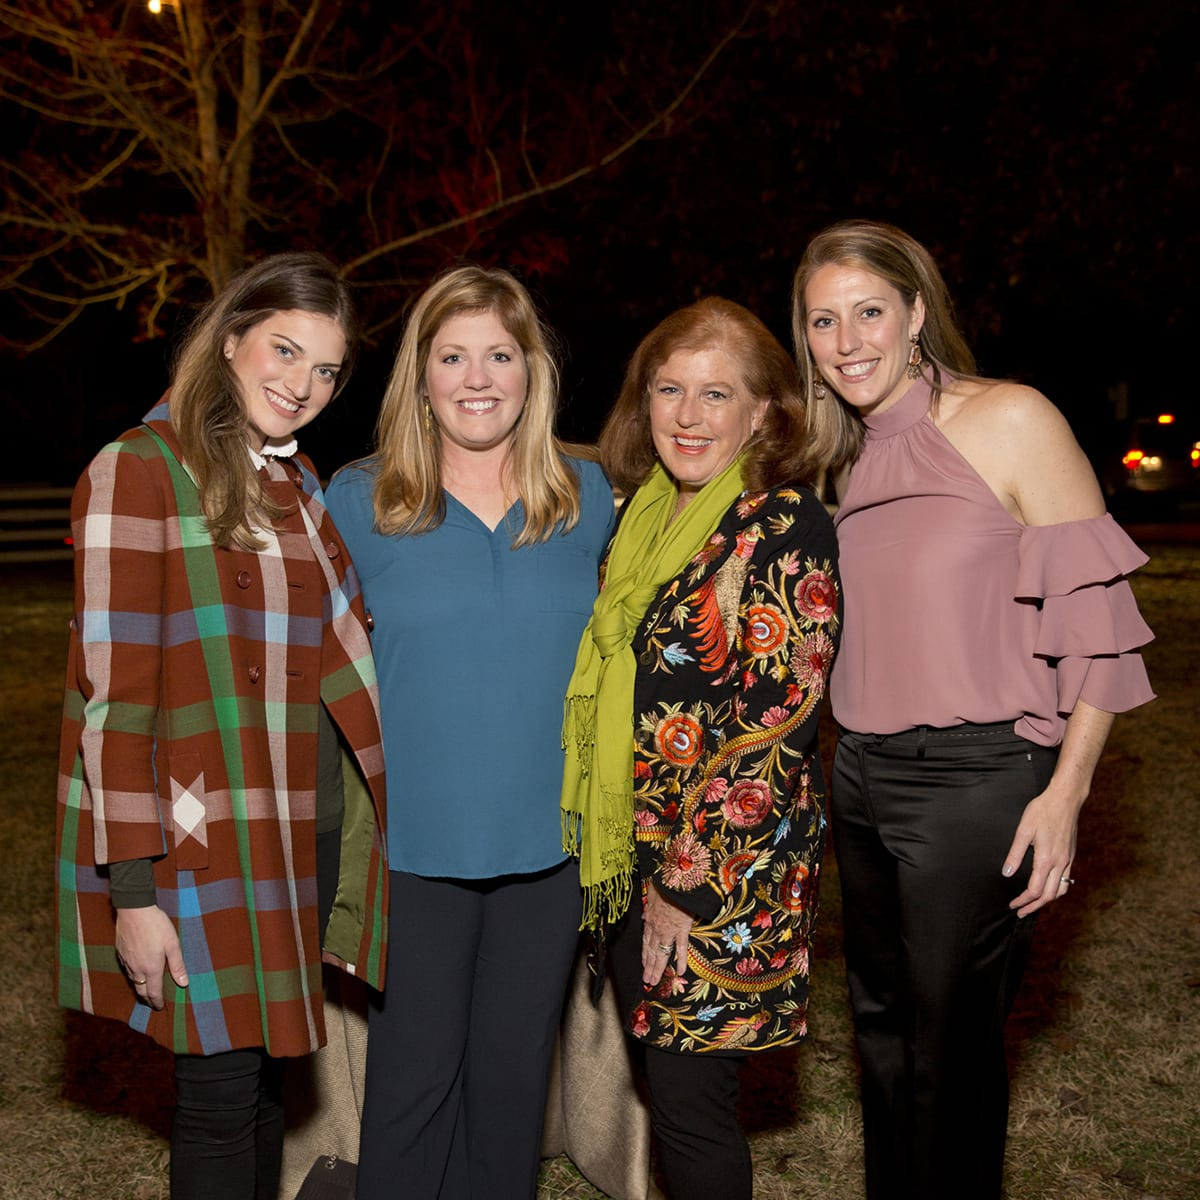 Houston, Memorial Park Conservancy Picnic for the Park, February 2018, Molly Jodeit, Jamie Ratliff, Cathy Jodiet, Jennifer Daly